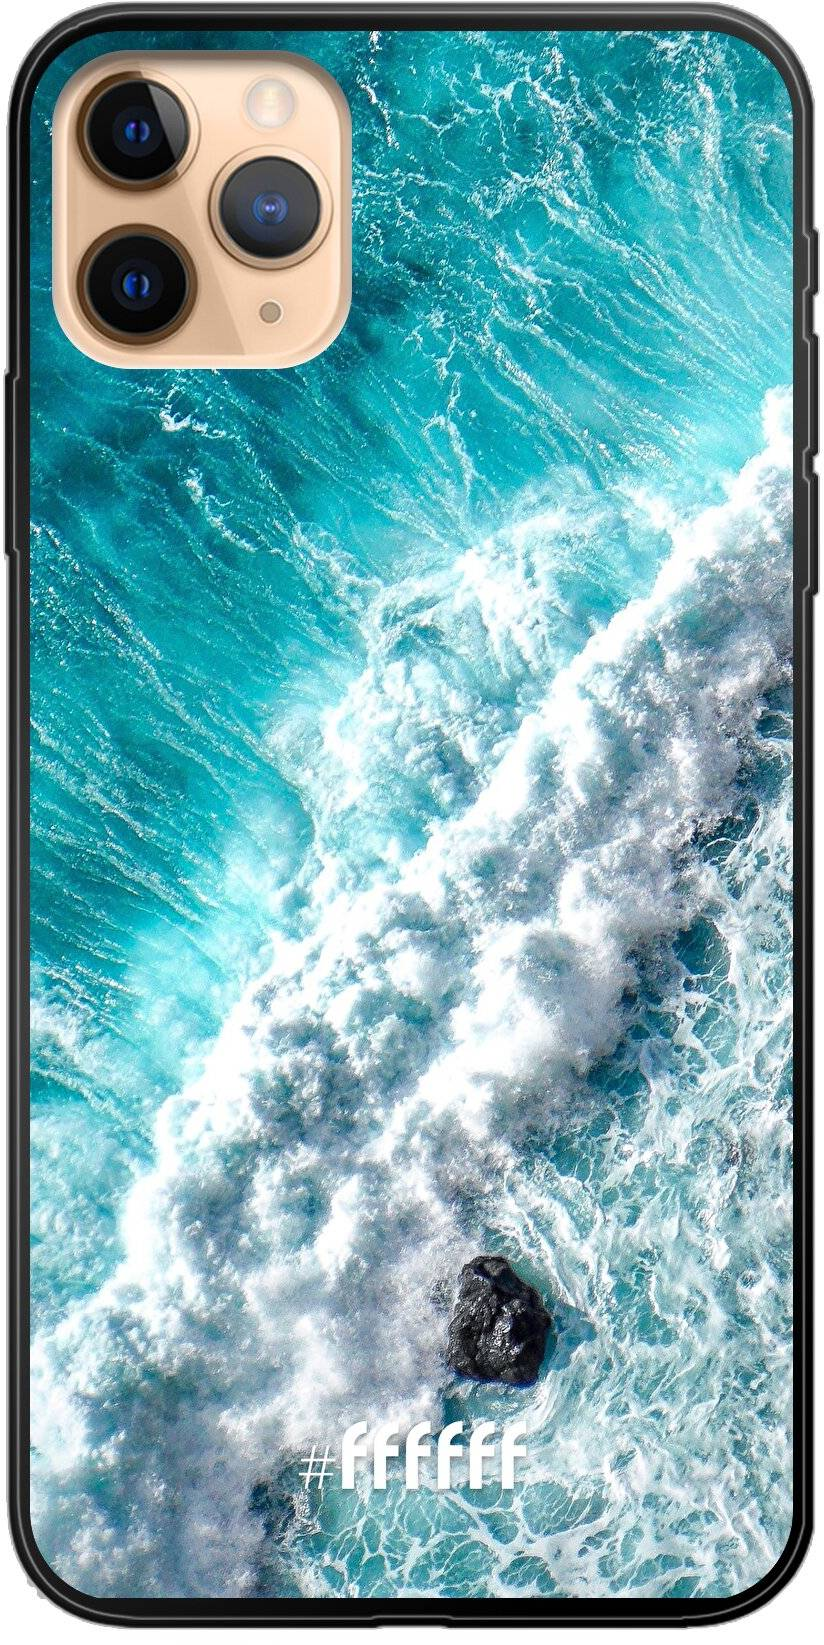 Perfect to Surf iPhone 11 Pro Max